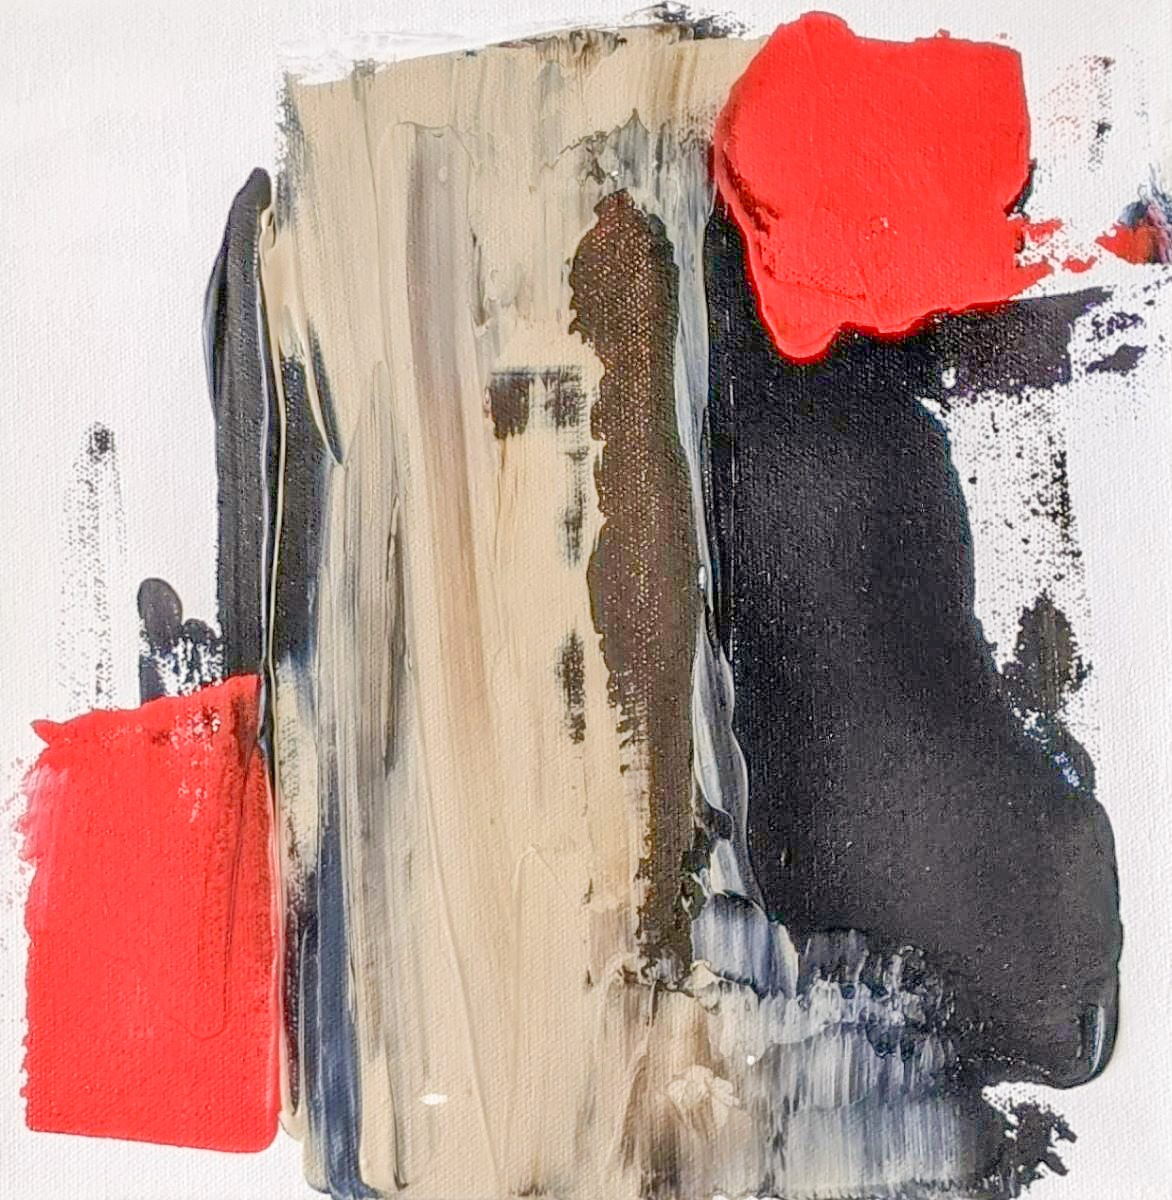 Abstract Art. Title: Composition Ⅲ, acrylic on canvas, 10x10 in by Contemporary Canadian Artist David Hovan.